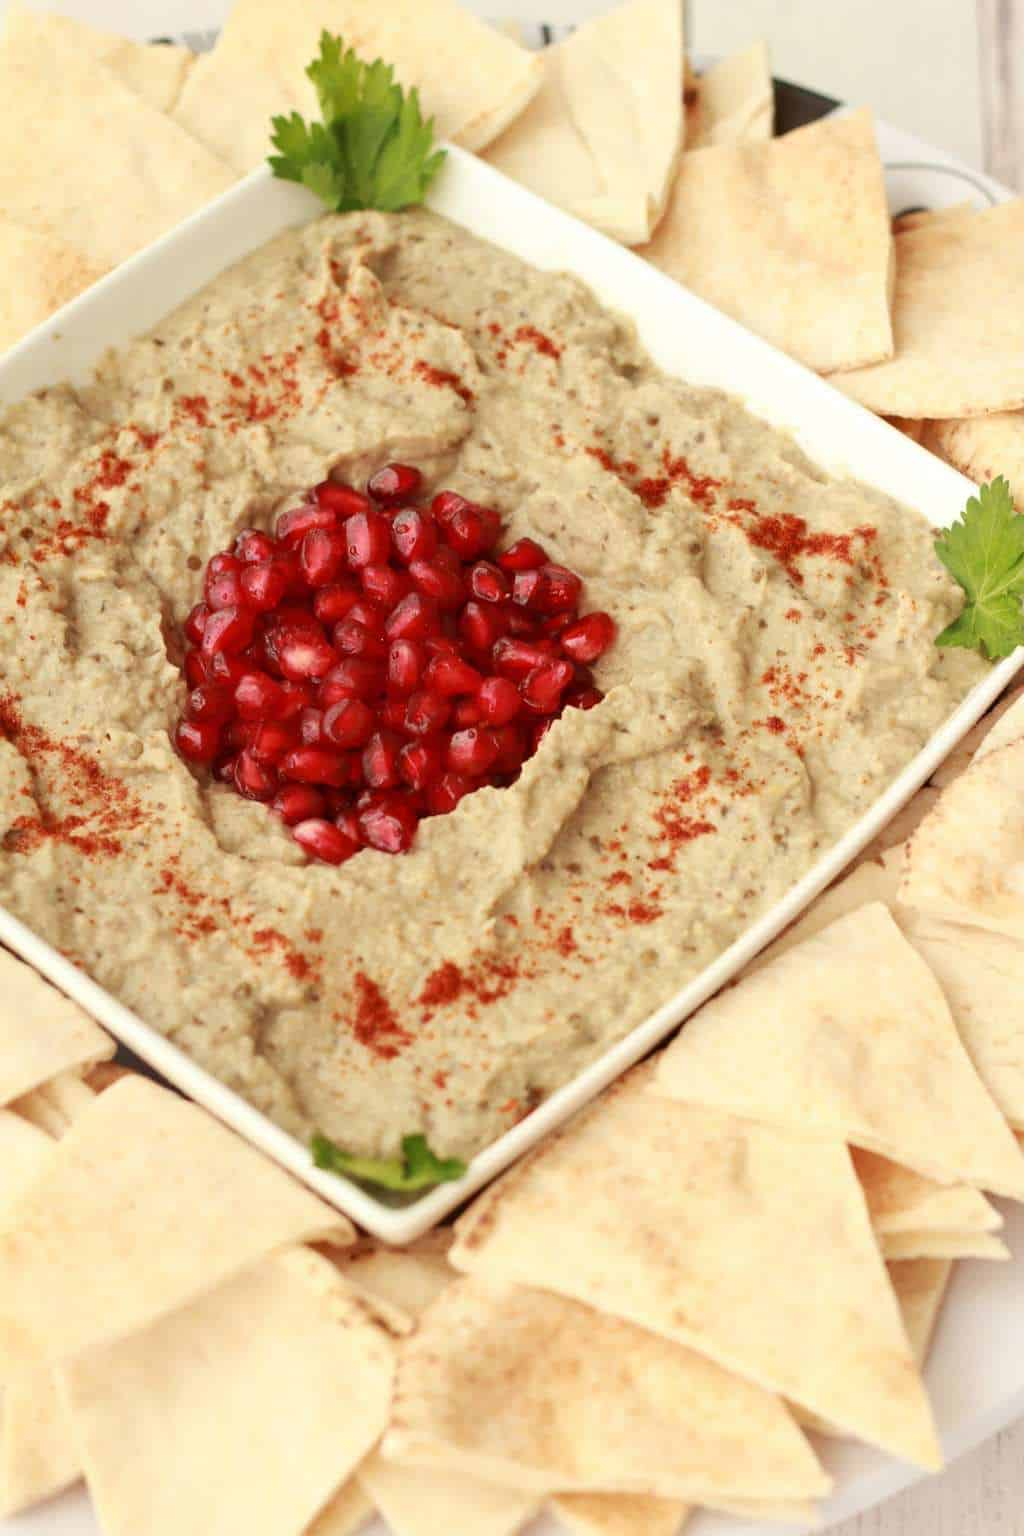 The Easiest Baba Ganoush #vegan #glutenfree #babaganoush #lovingitvegan #middleeastern #moutabel